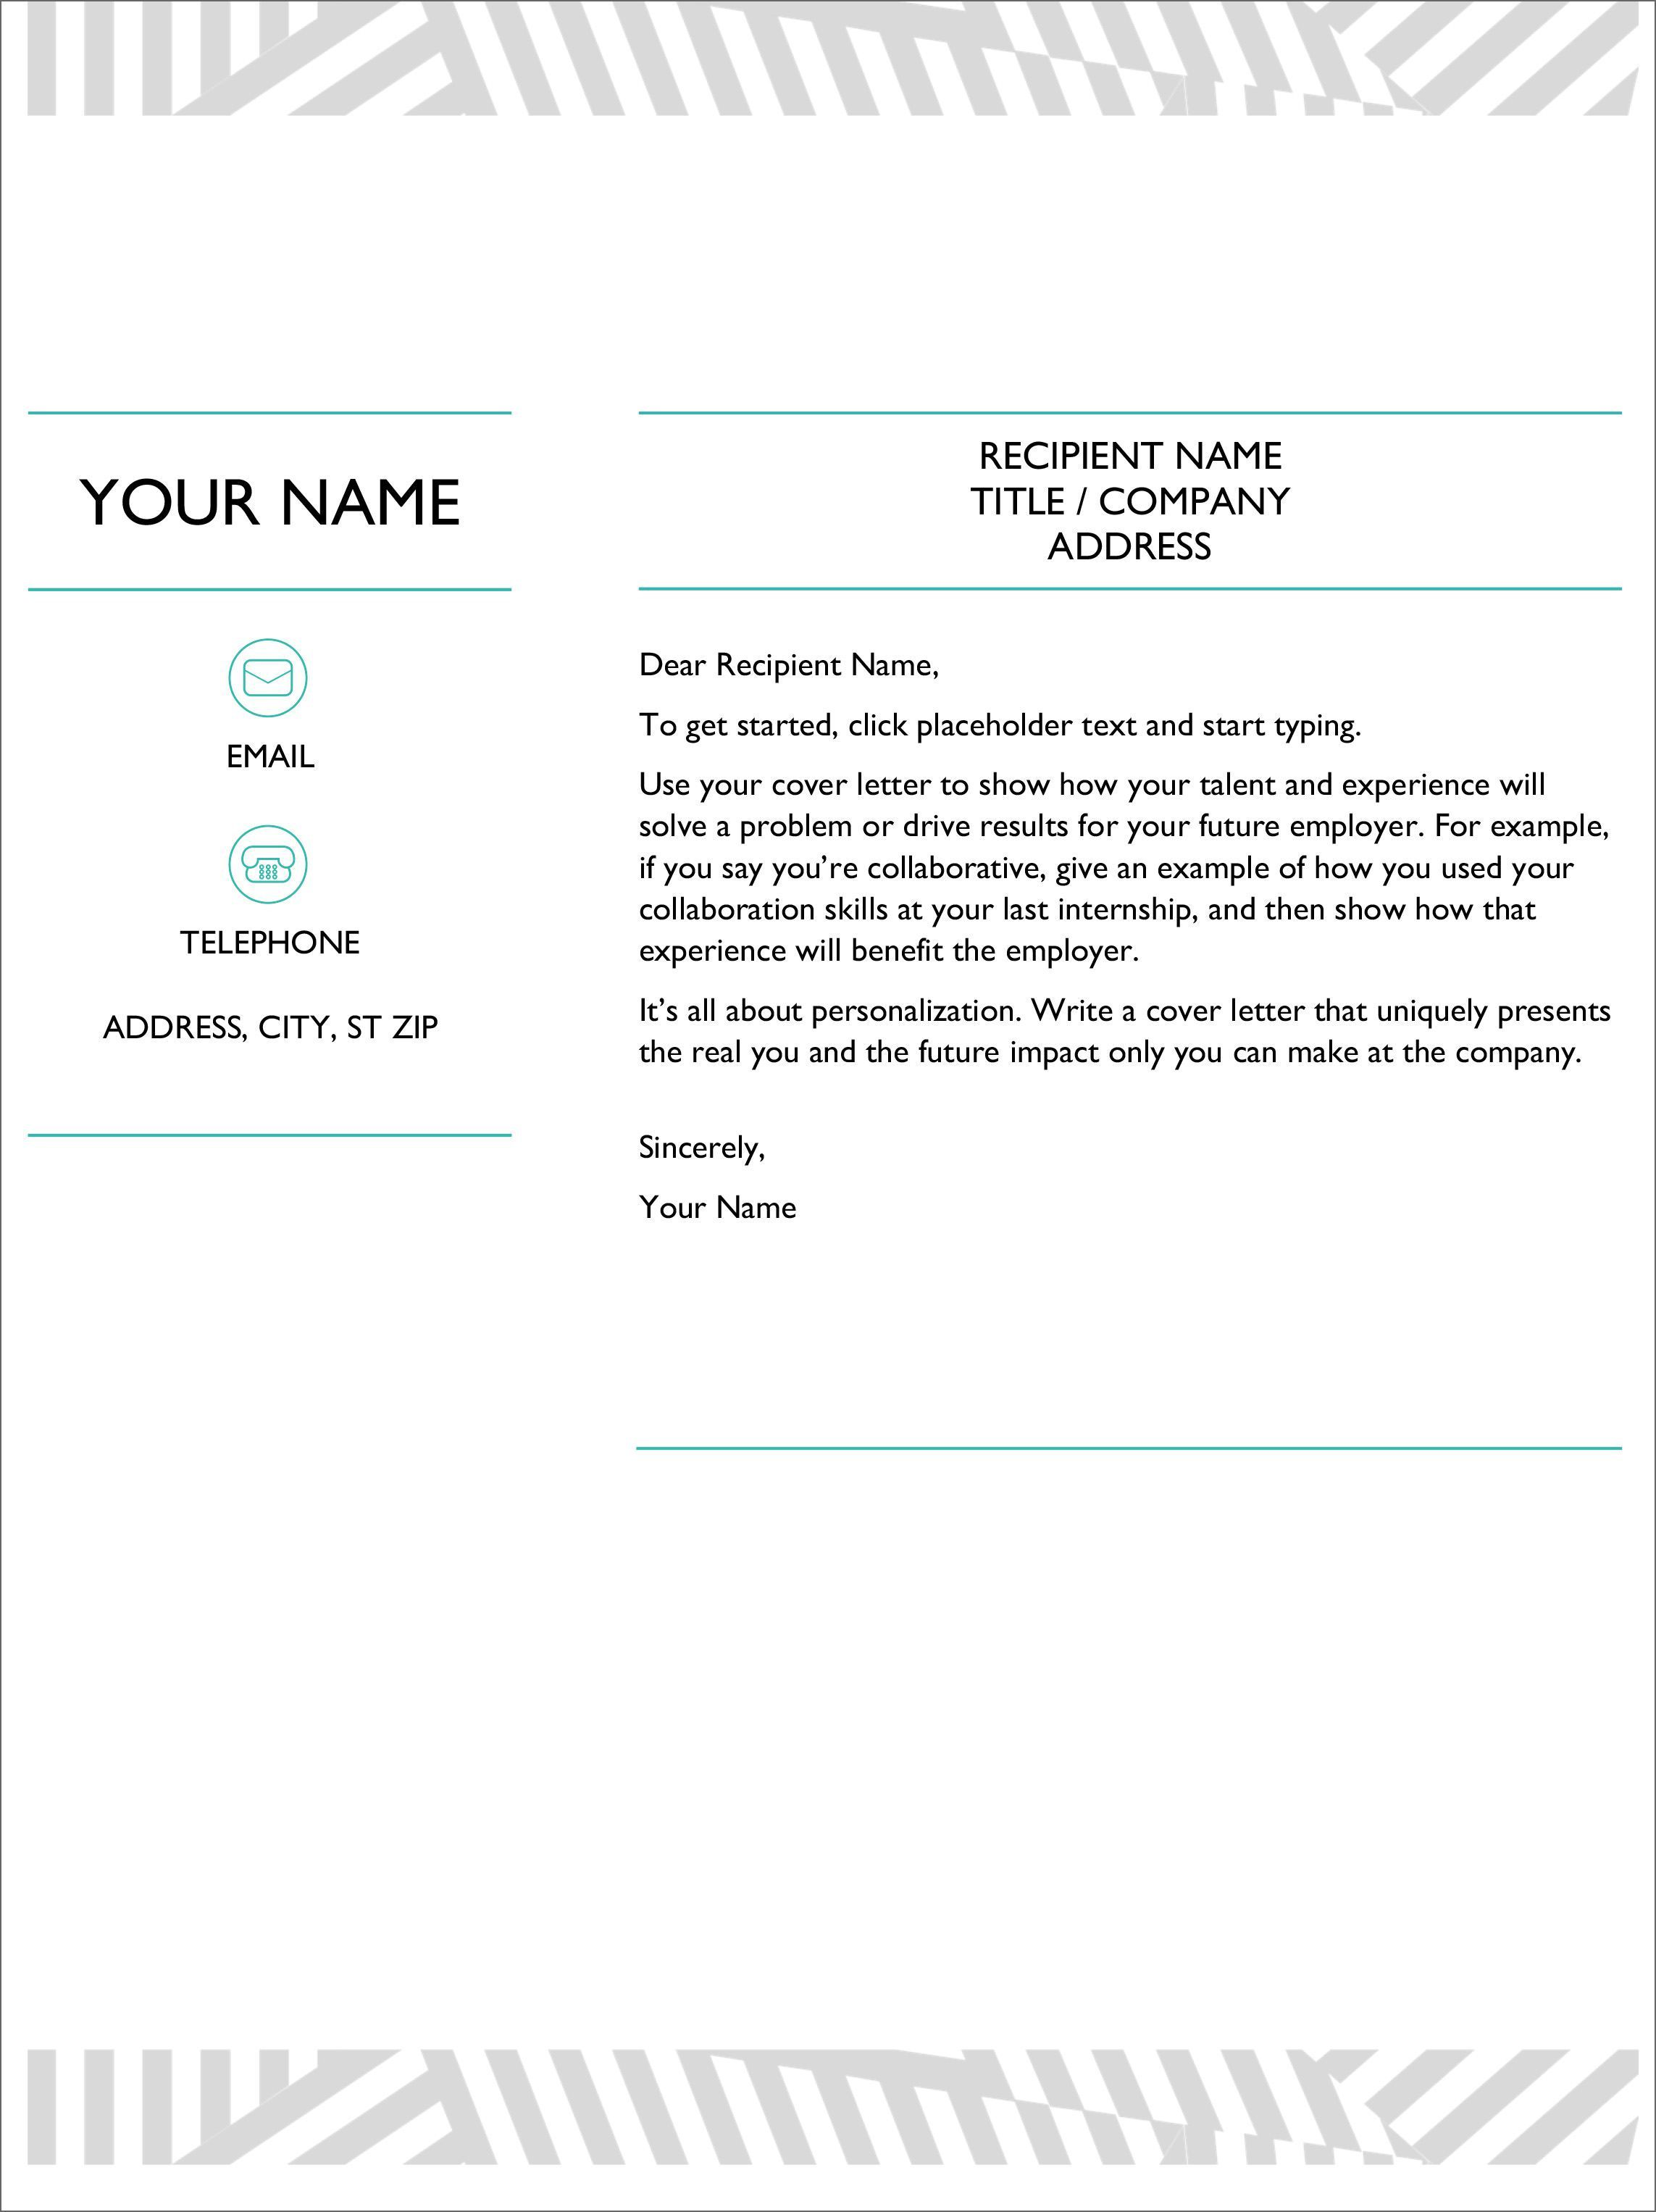 002 Astounding Microsoft Word Letter Template High Resolution  Free Download M Of ResignationFull